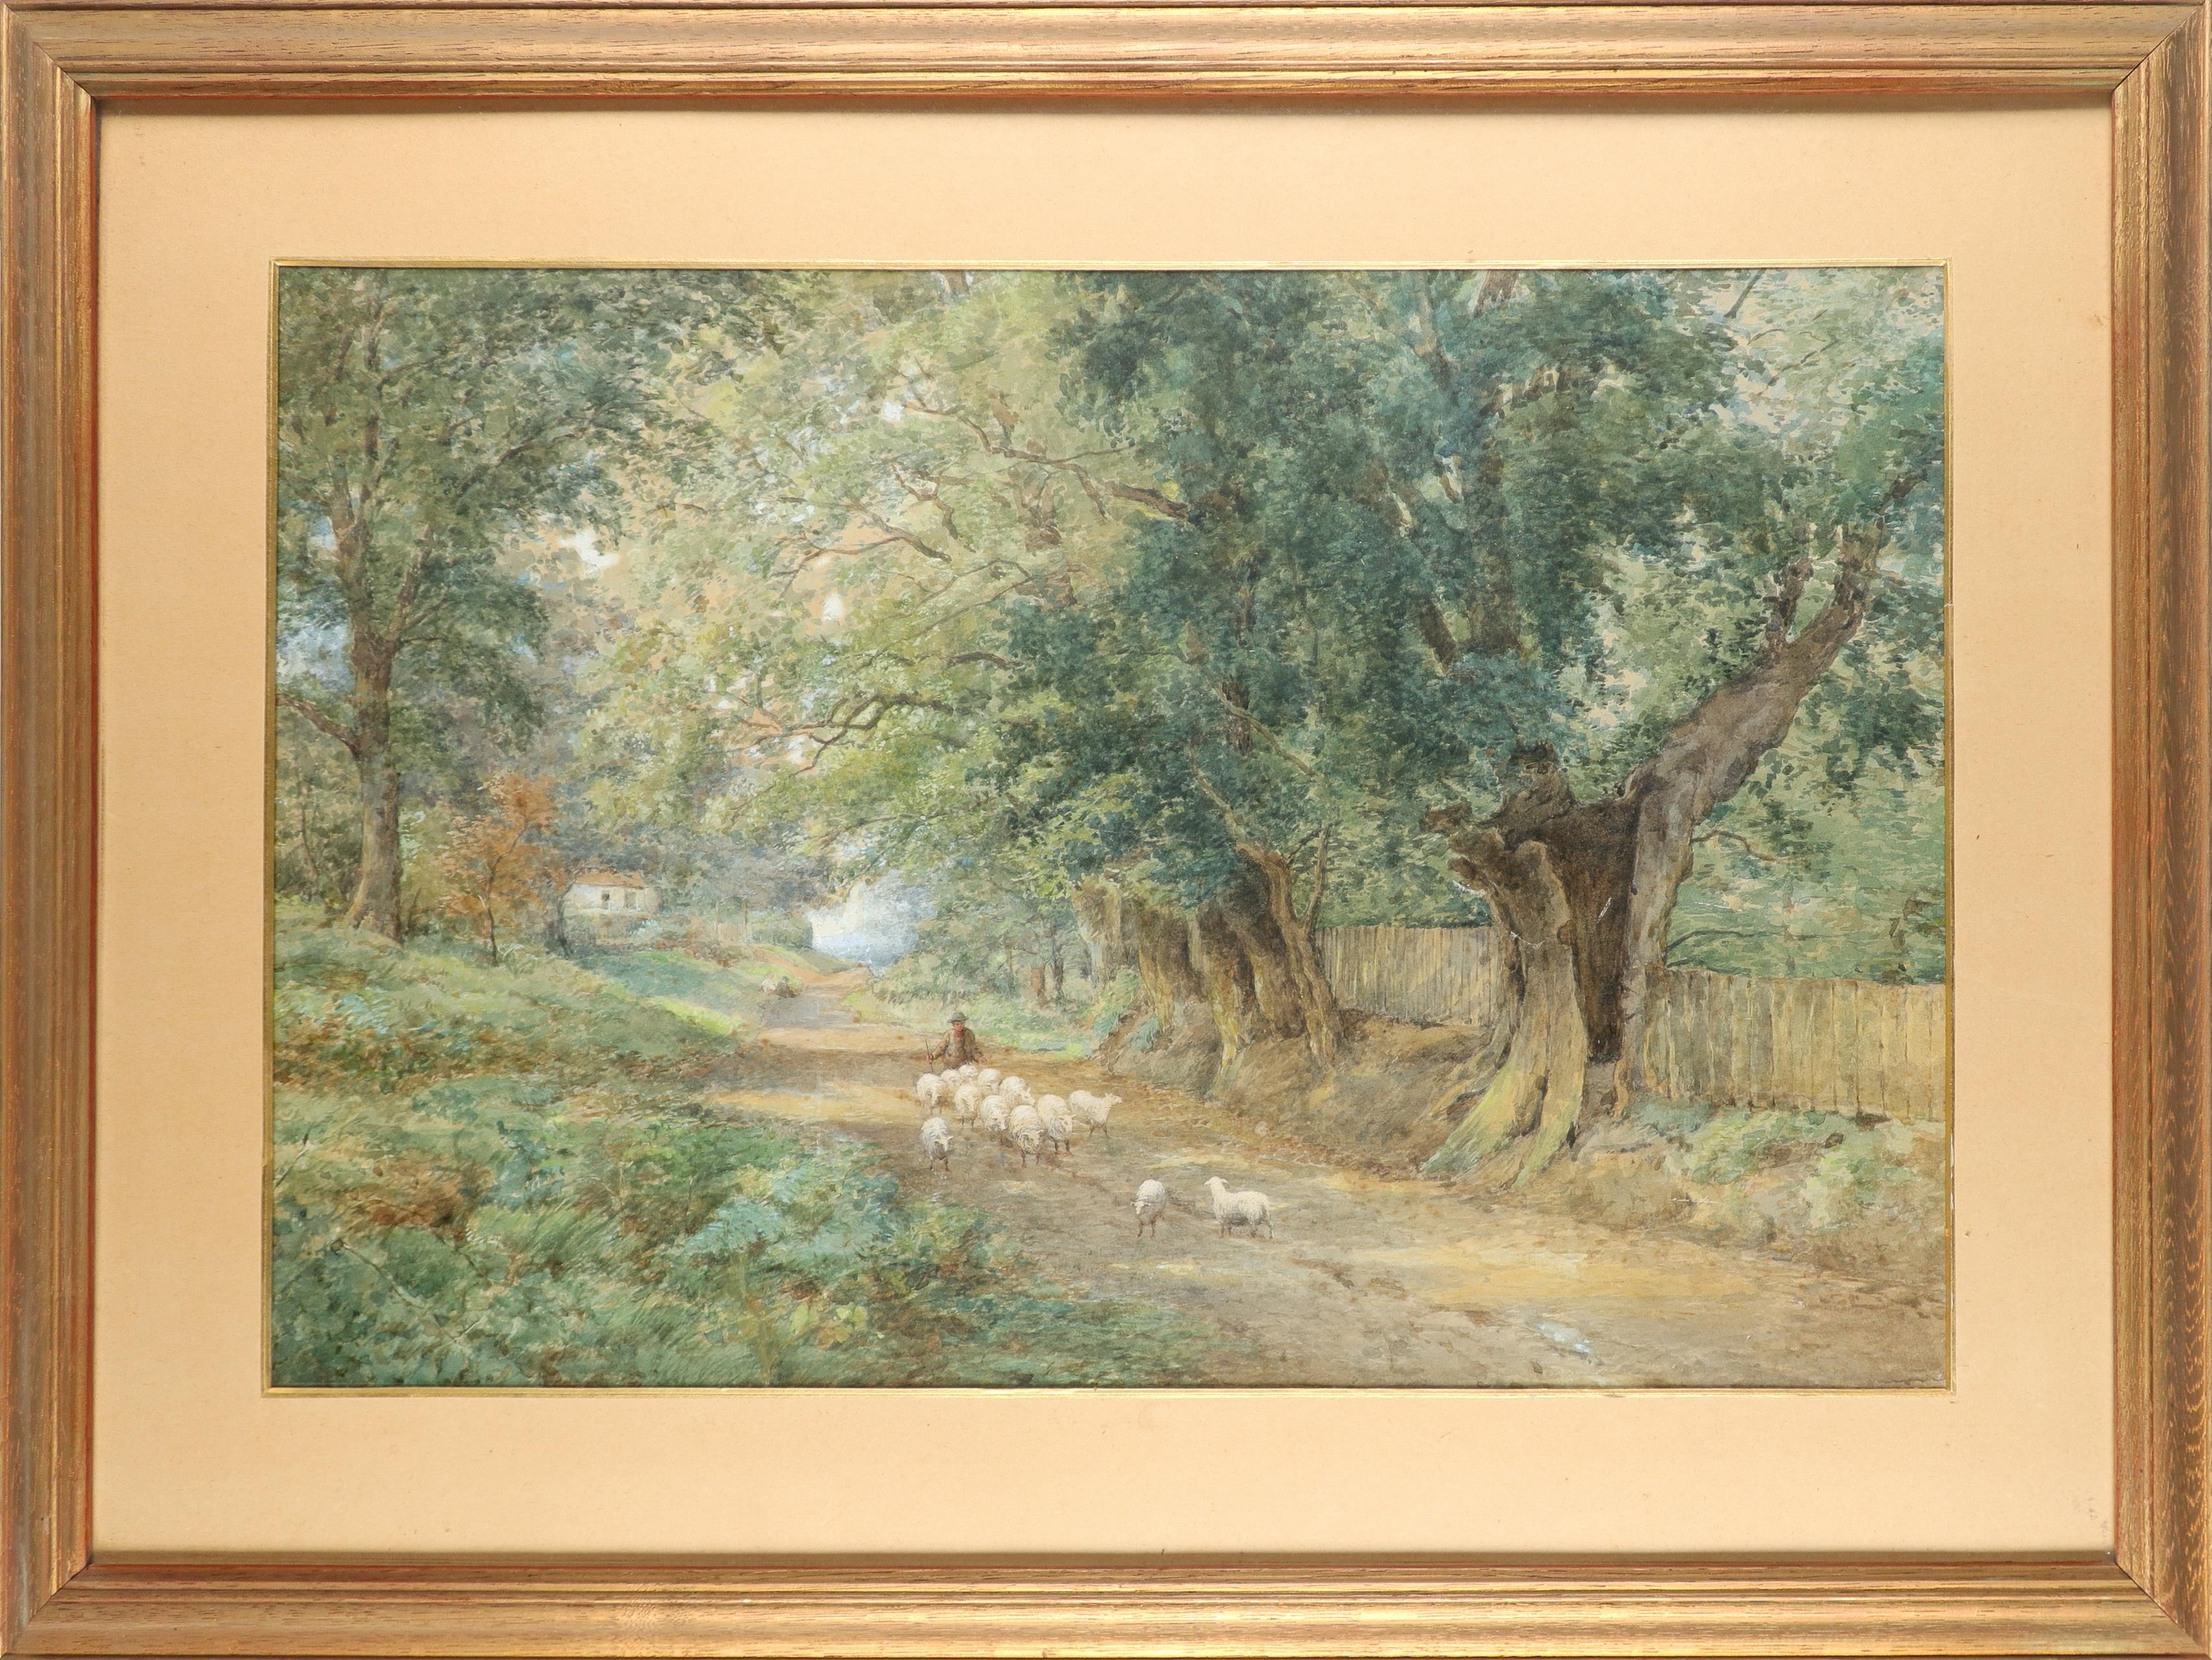 English School 19th Century A shepherd and his flock on a country road Pencil and watercolour - Image 2 of 3